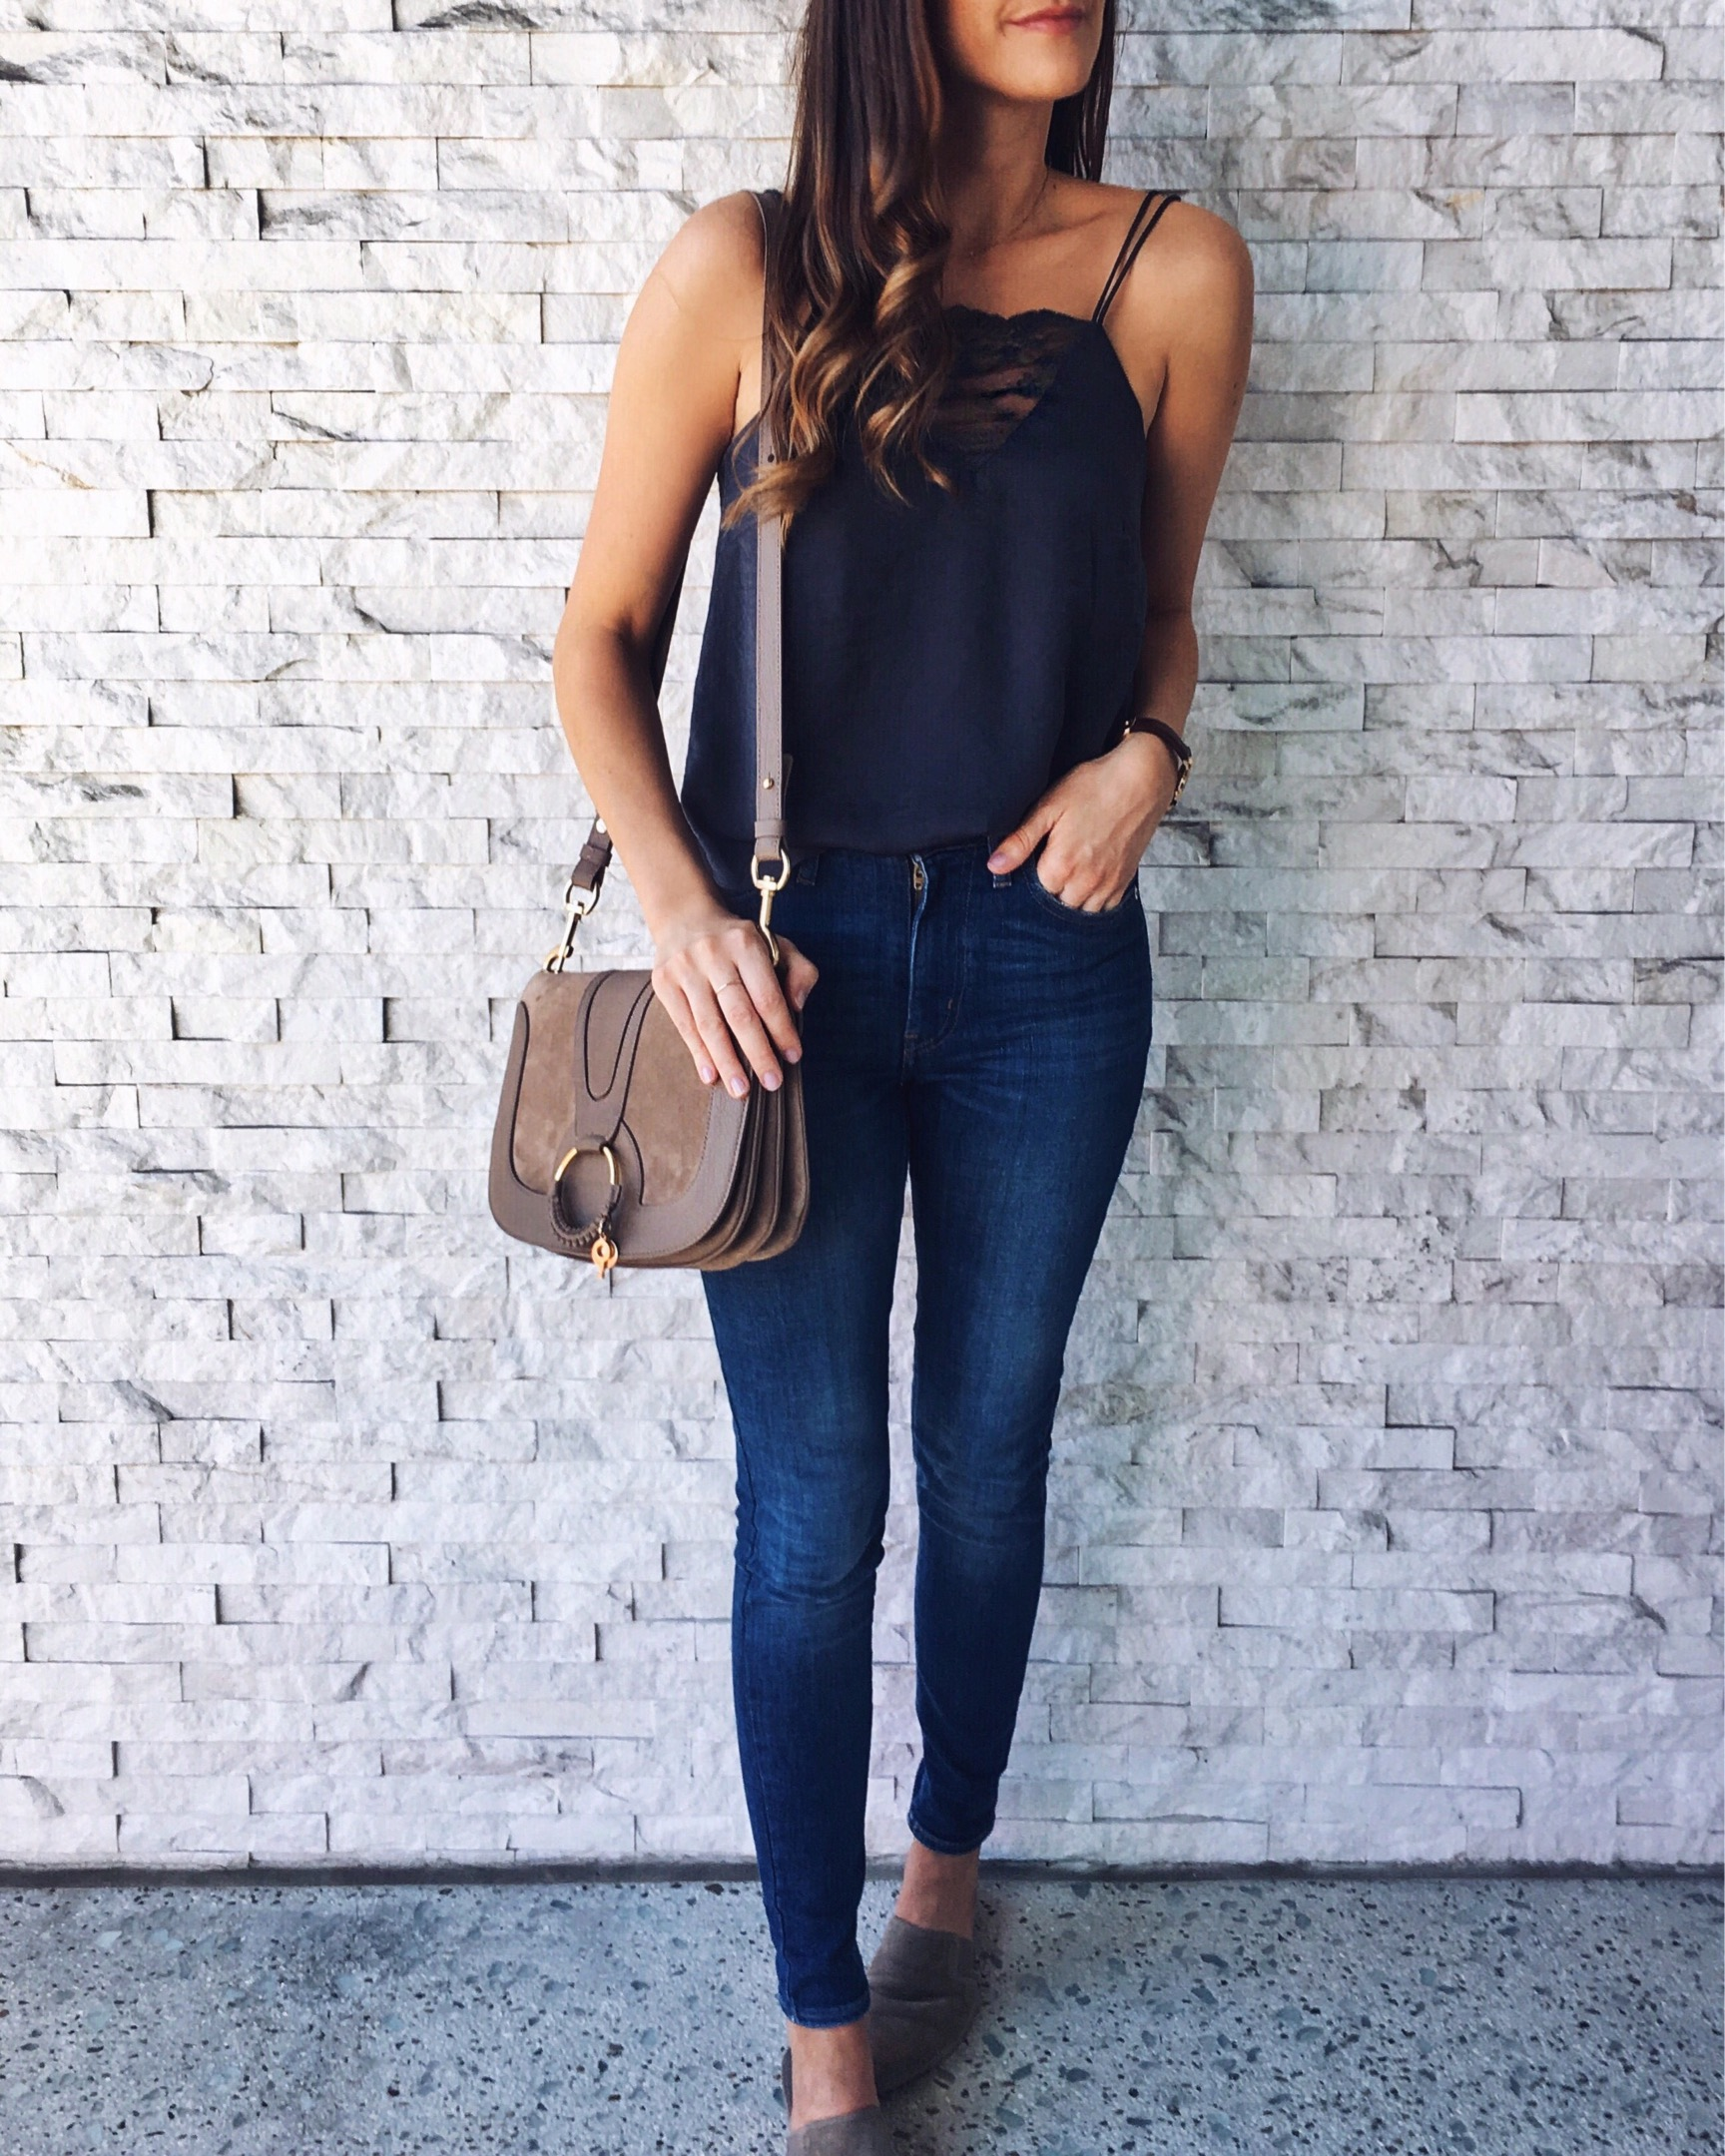 H&M Top  |  Levi's Jeans  |  Vince Slides  |  See by Chloe Bag